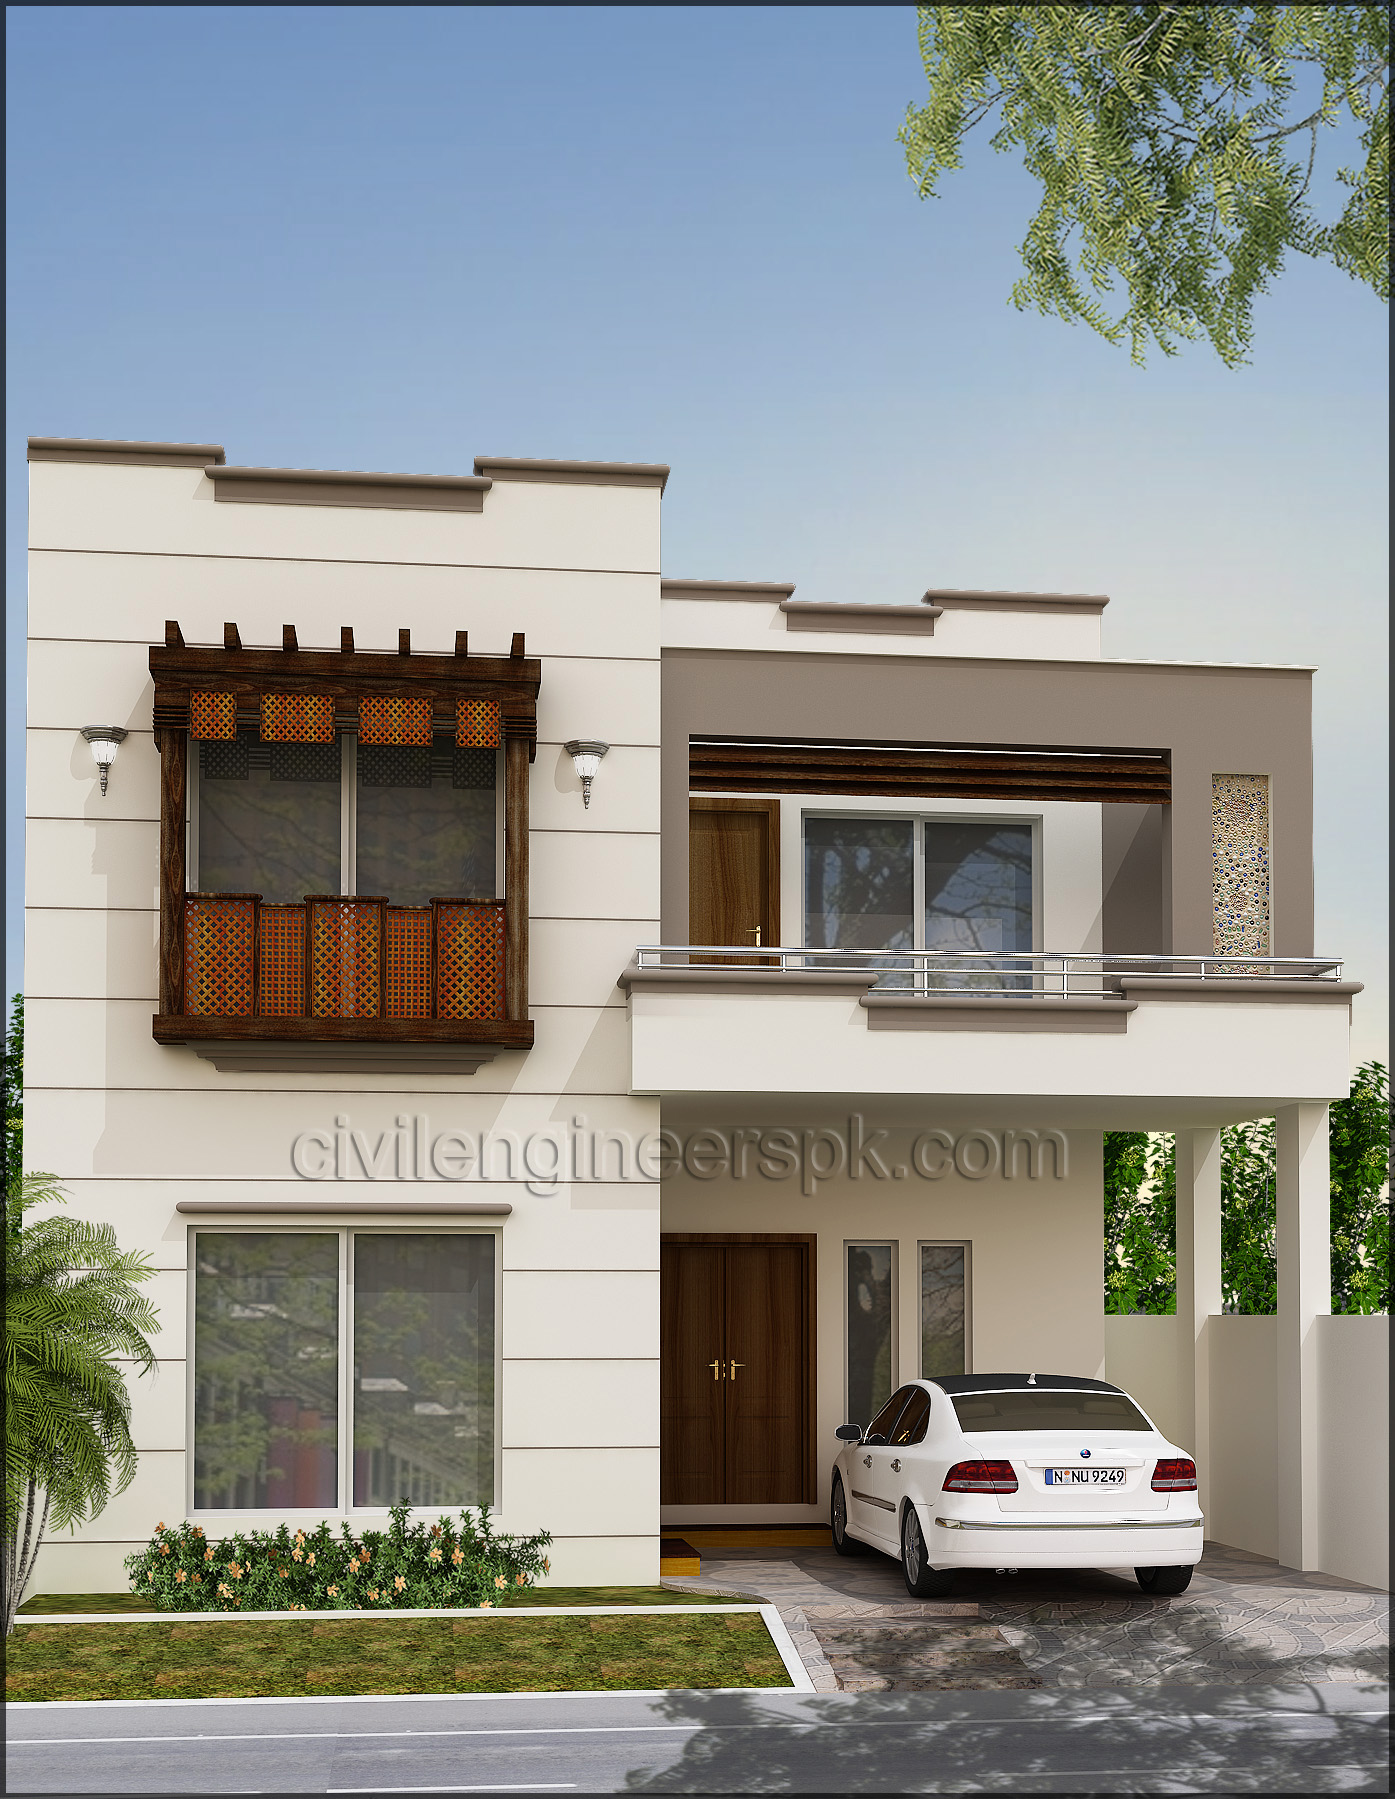 Three Story House Plans Front Views Civil Engineers Pk